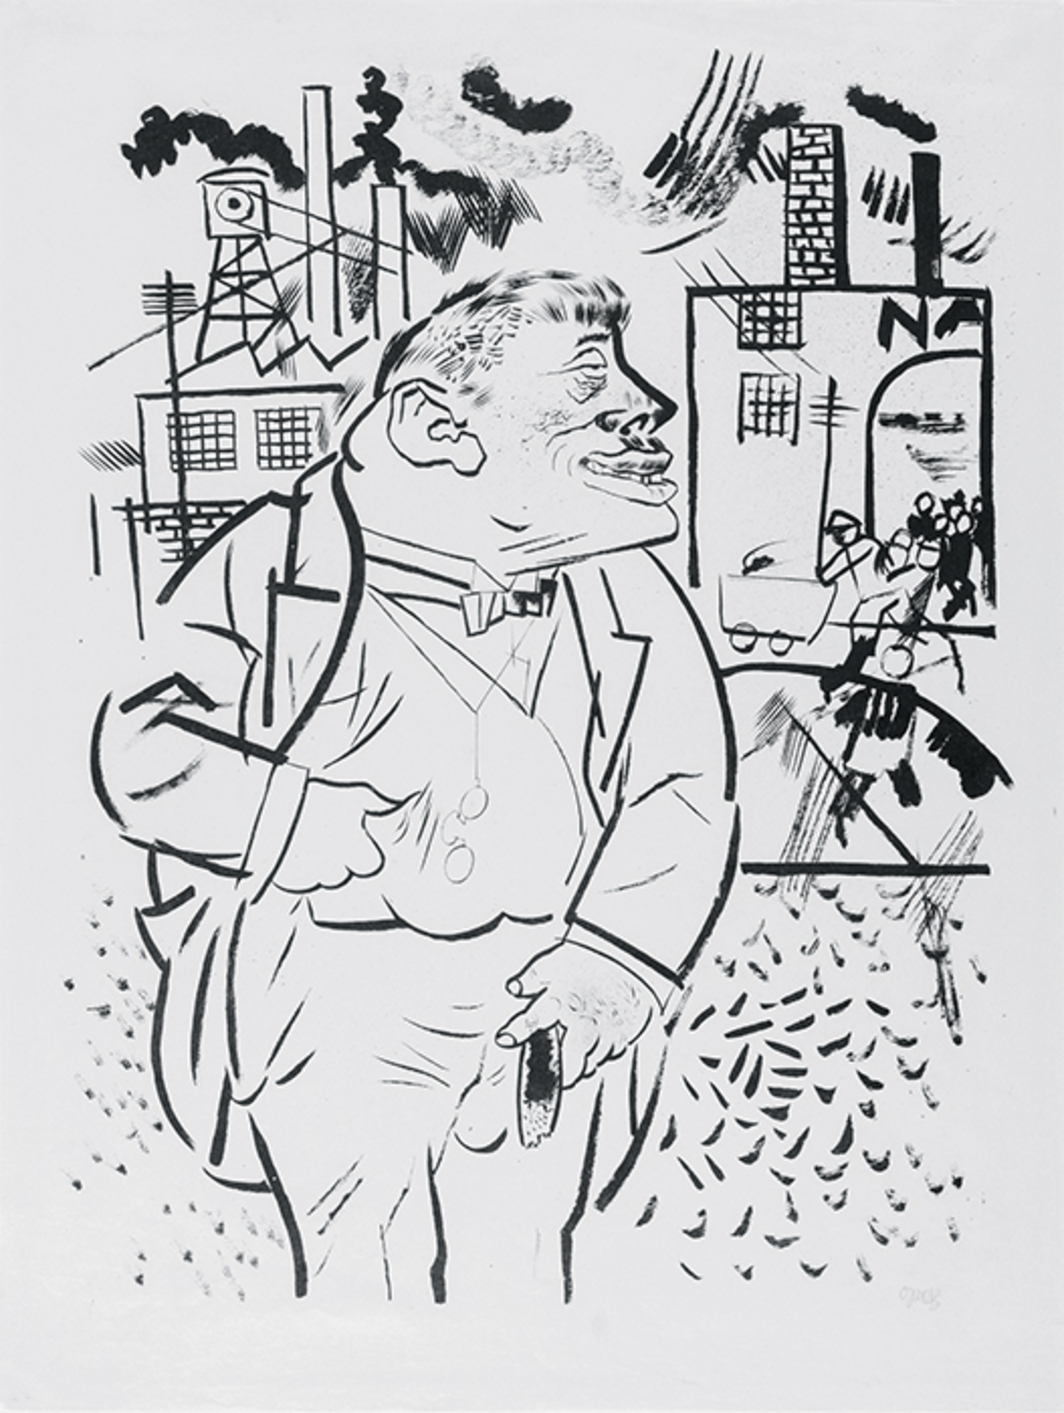 "George Grosz, Der Regisseur (The Boss), 1922, photolithograph on paper, 22 3/4 × 16 3/4"". © Estate of George Grosz/Licensed by VAGA, New York, NY."